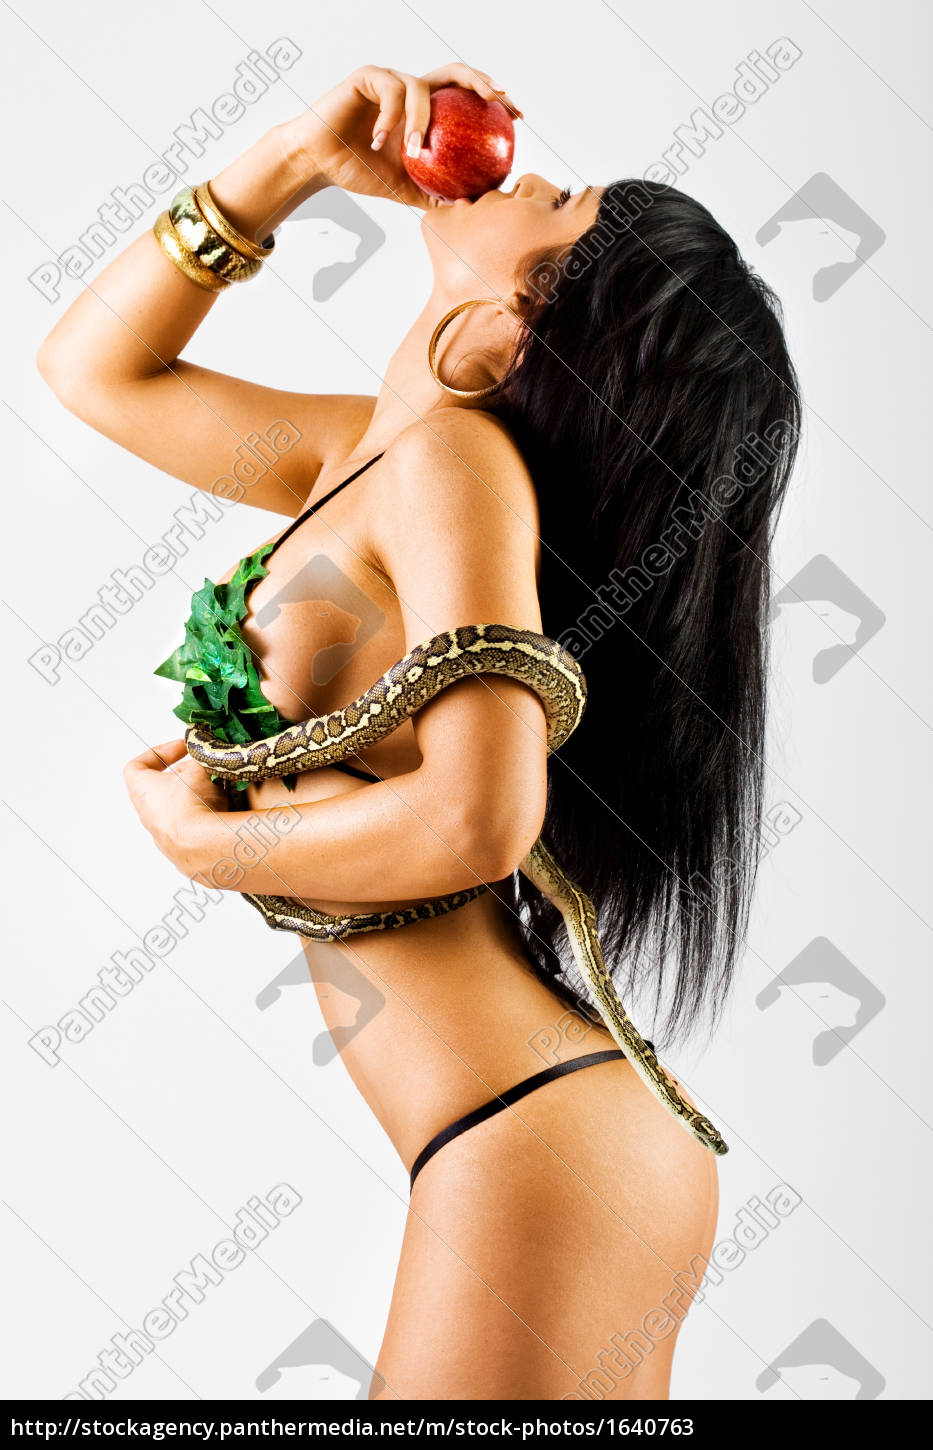 woman, with, a, snake, eating, apple - 1640763